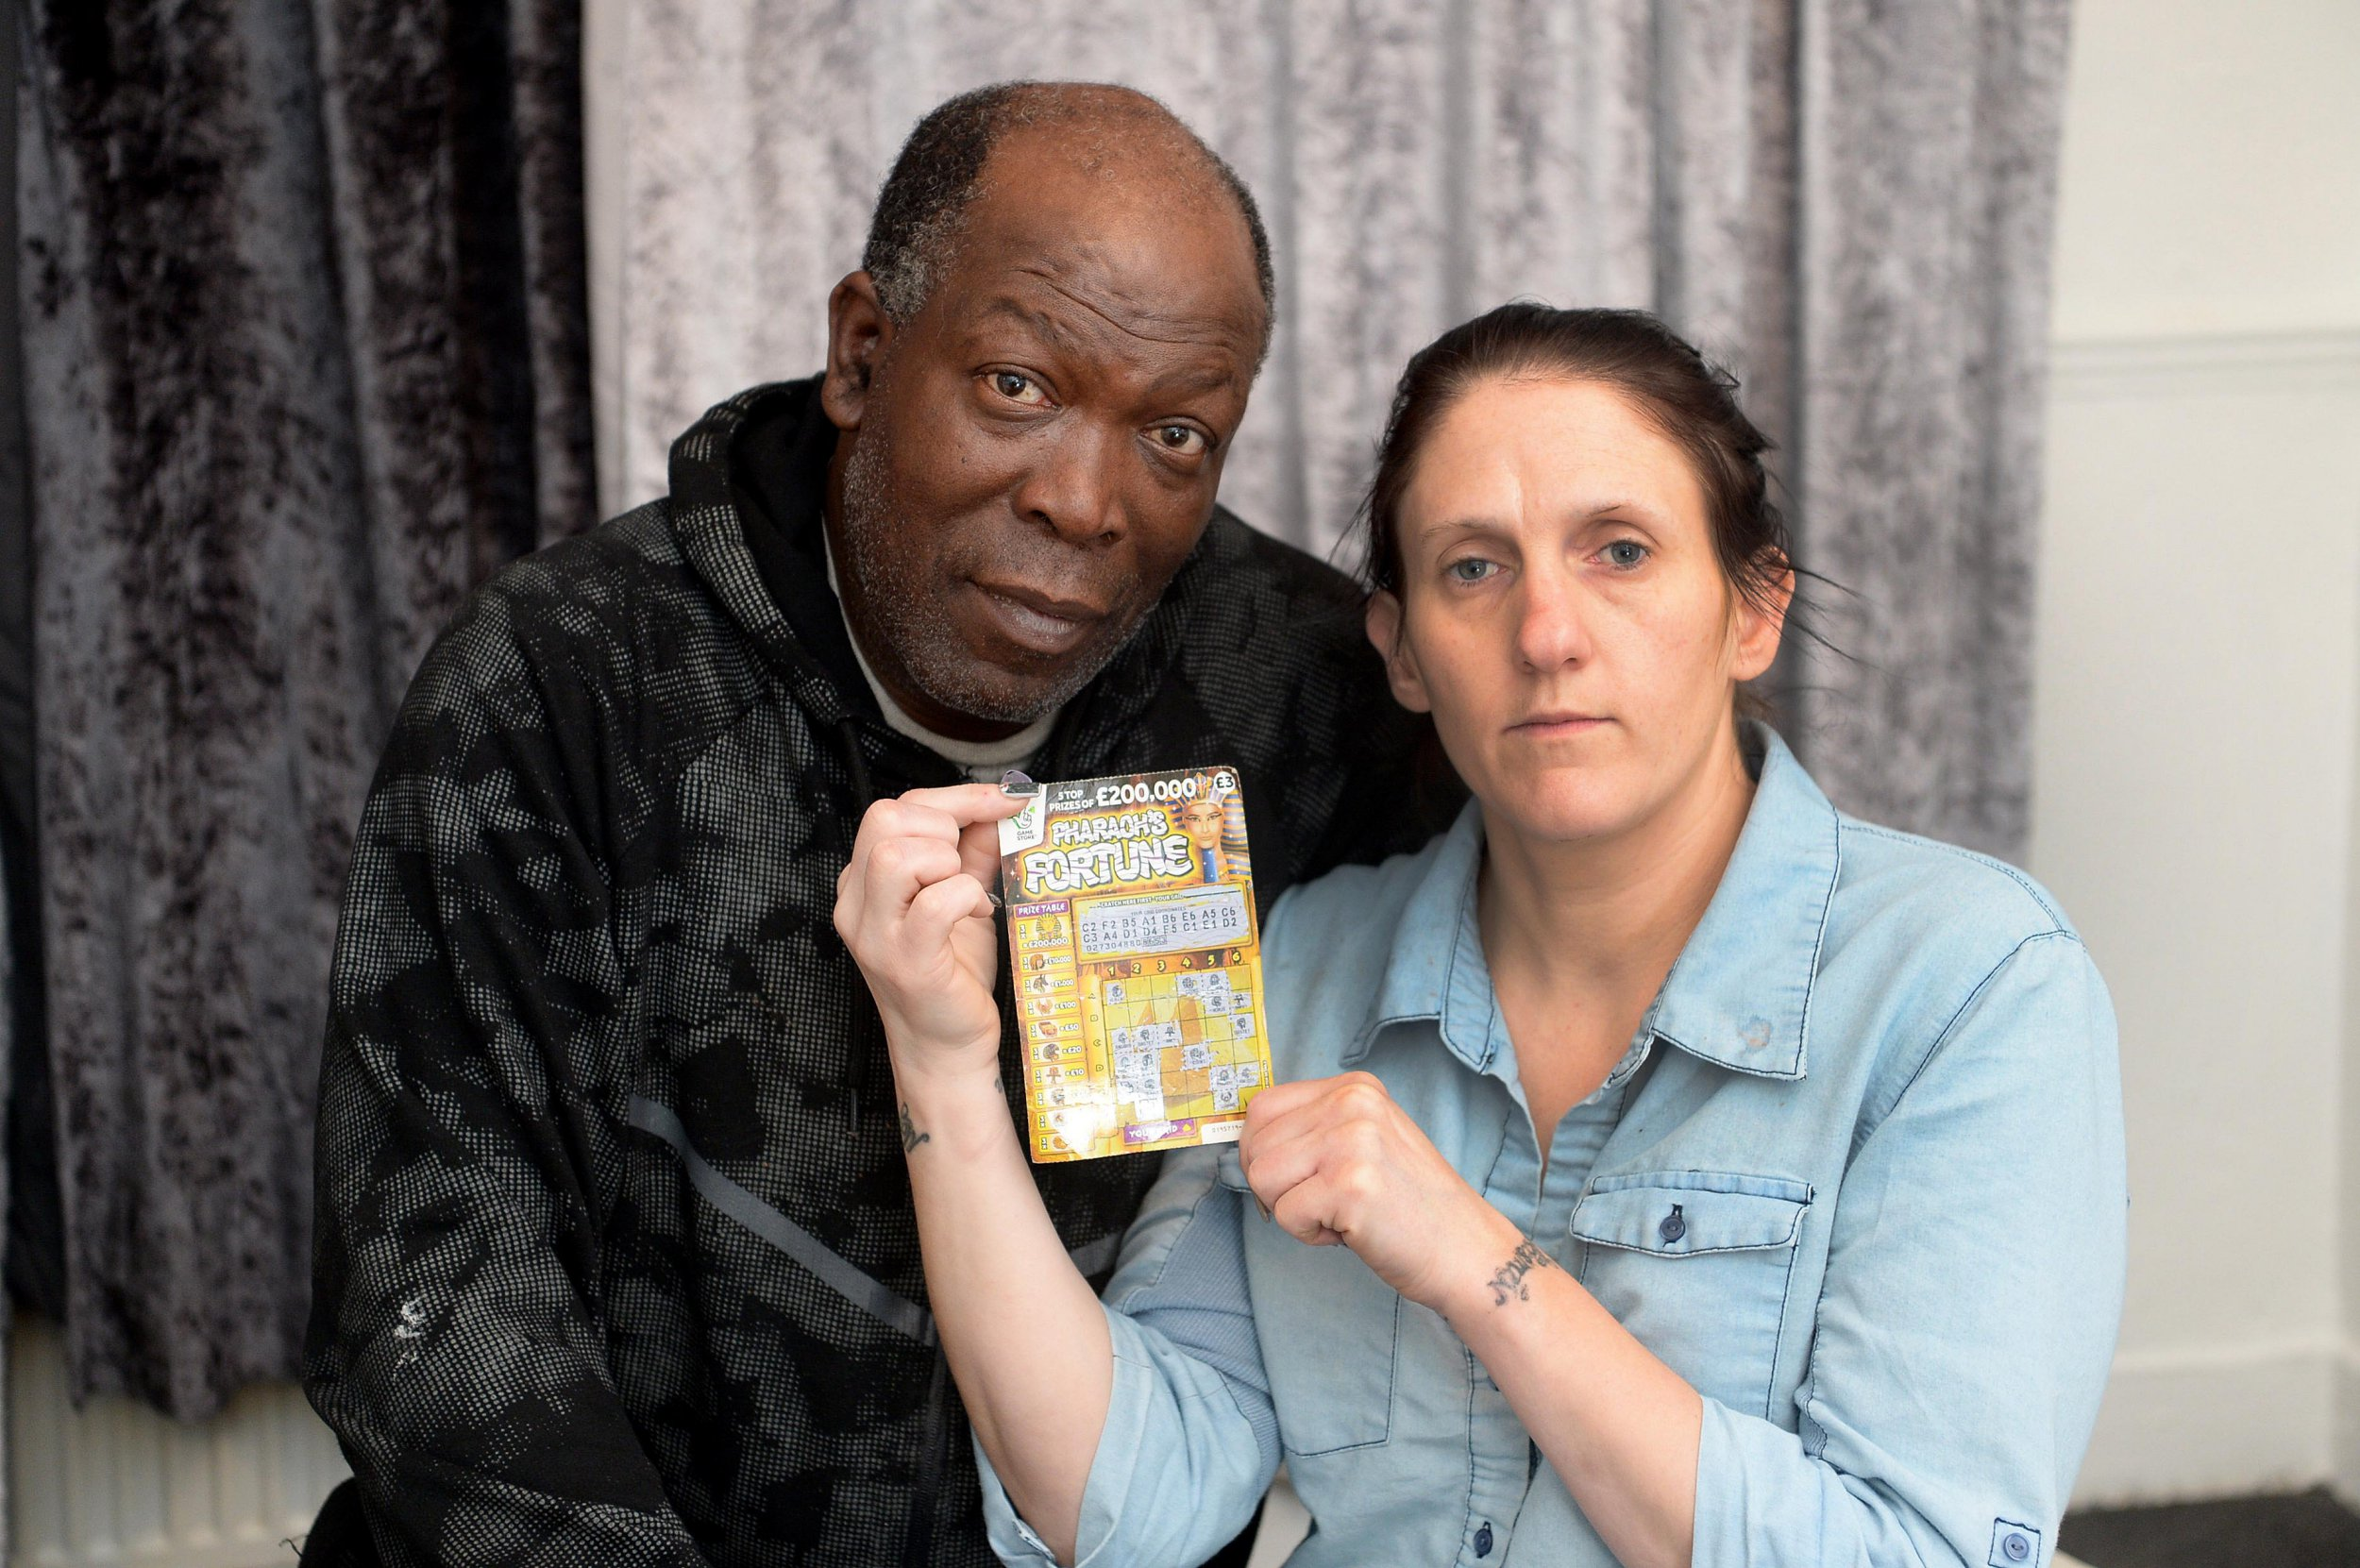 """Eric Walker, 56, with his partner Amanda Emmadi, 36. A National Lottery player insists he has won ?200,000 on a scratchcard - despite Camelot saying the ticket has been doctored. See SWNS story SWLEticket. Eric Walker, 56, was overjoyed when he scratched the ticket and discovered he had won the jackpot prize on the lotto's Pharaoh's Fortune game. But his delight turned to heartbreak when Camelot refused to pay out after seeing a picture of the card and claiming it's doctored. Outraged Eric, a father of four from Sheffield, South Yorks, denies tampering with the ?3 ticket and says it's """"obvious"""" he's won """"fair and square"""". Camelot Group, which is carrying out an investigation, claim it appears a letter F on the card has been changed to an E to turn it into a winning ticket. Eric, who is unemployed and has four children aged between 14 months and nine-years-old, says the money would be """"life changing"""". Eric's card shows that he uncovered three pharaoh symbols on squares D1, E5 and A5, however, the E5 code appears to have been doctored. The F5 square, which the code was originally believed to have been, is also scratched off."""